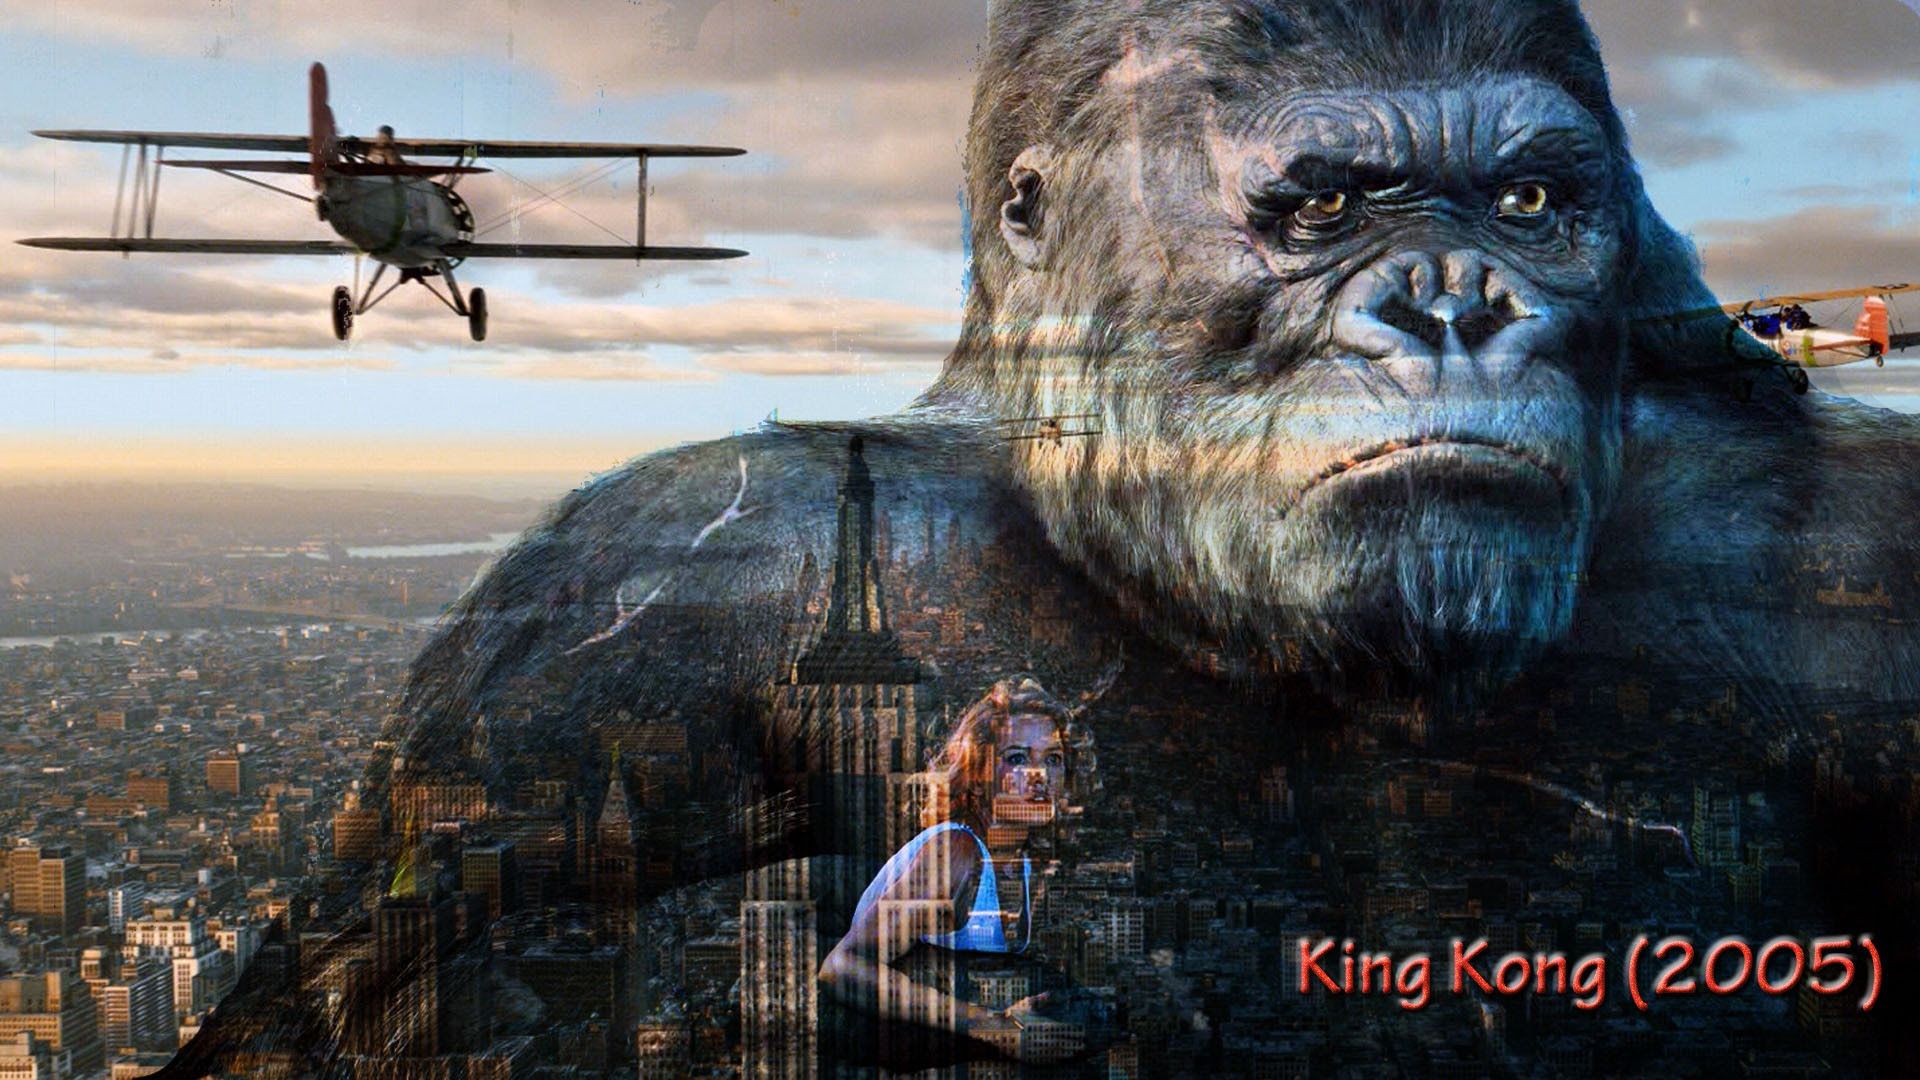 King Kong Gym Quotes. QuotesGram